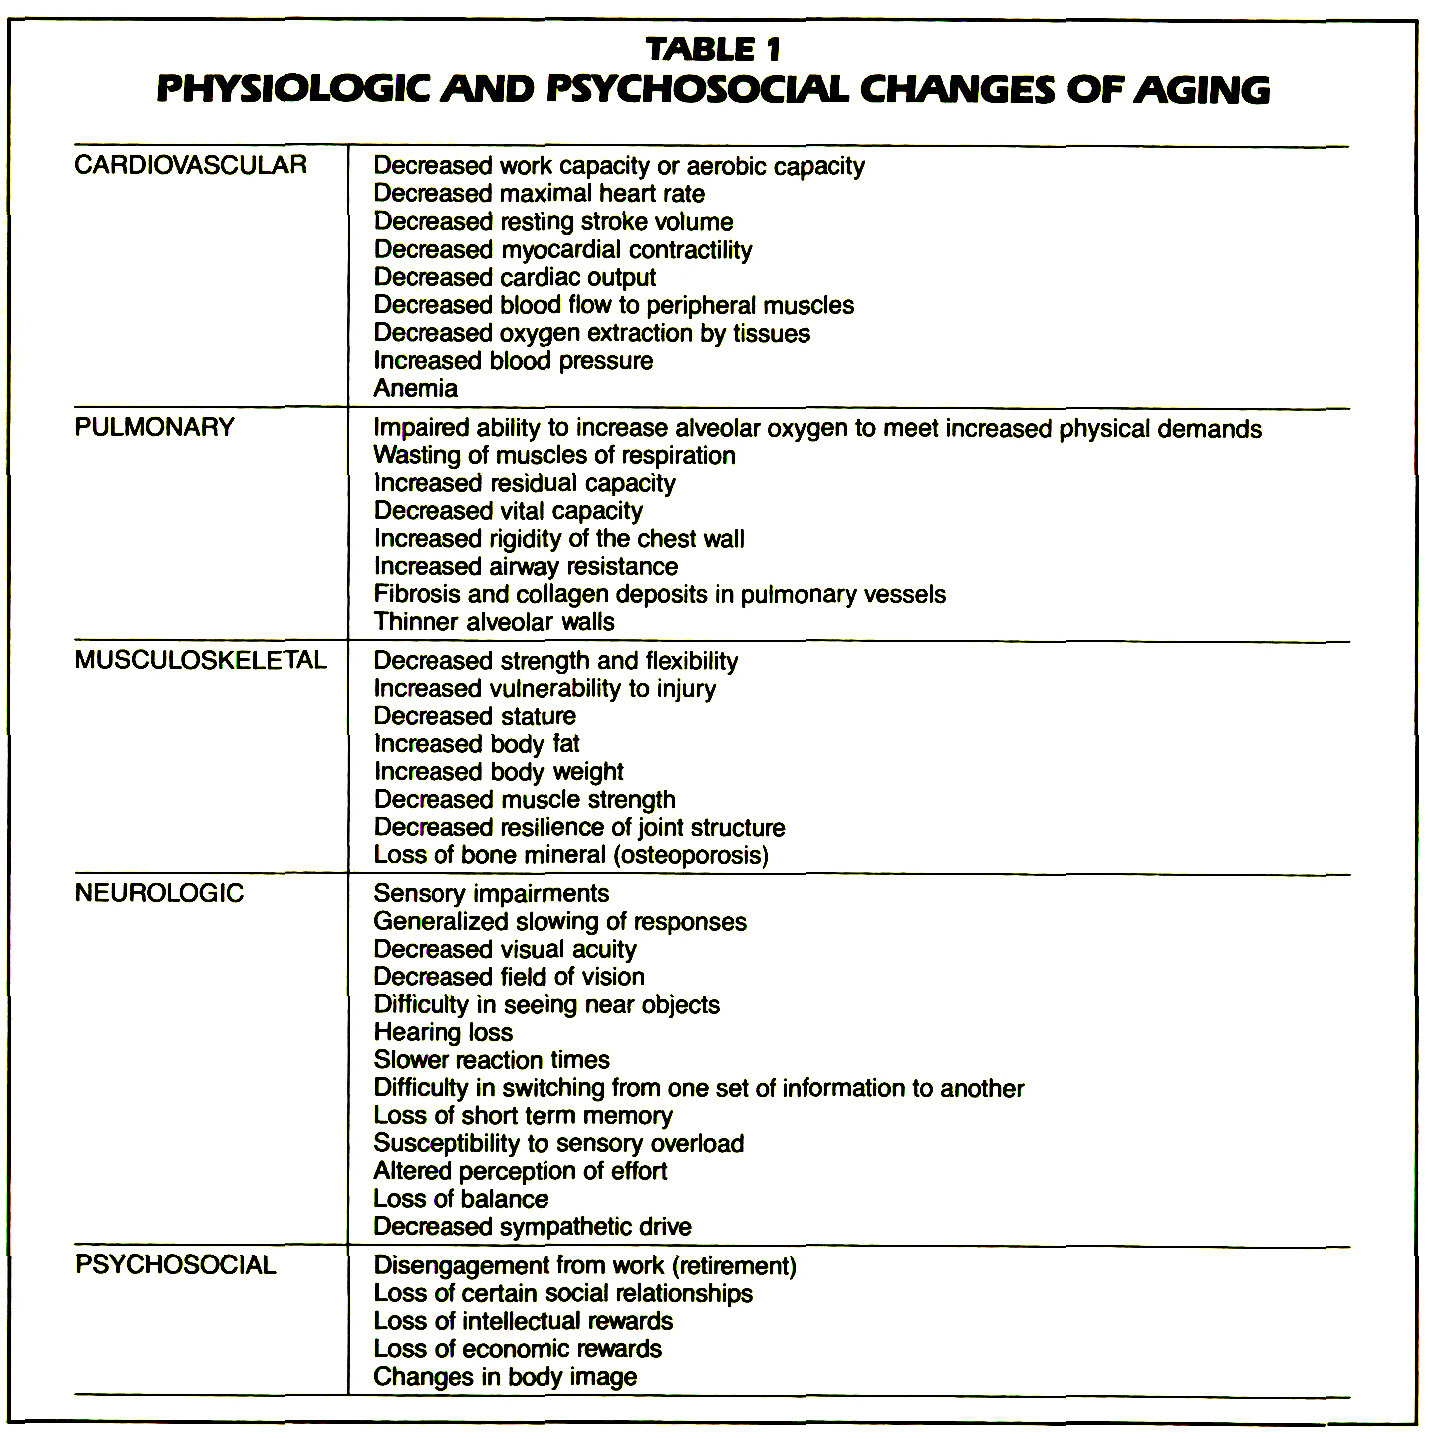 TABLE 1PHYSIOLOGIC AND PSYCHOSOCIAL CHANGES OF AGING